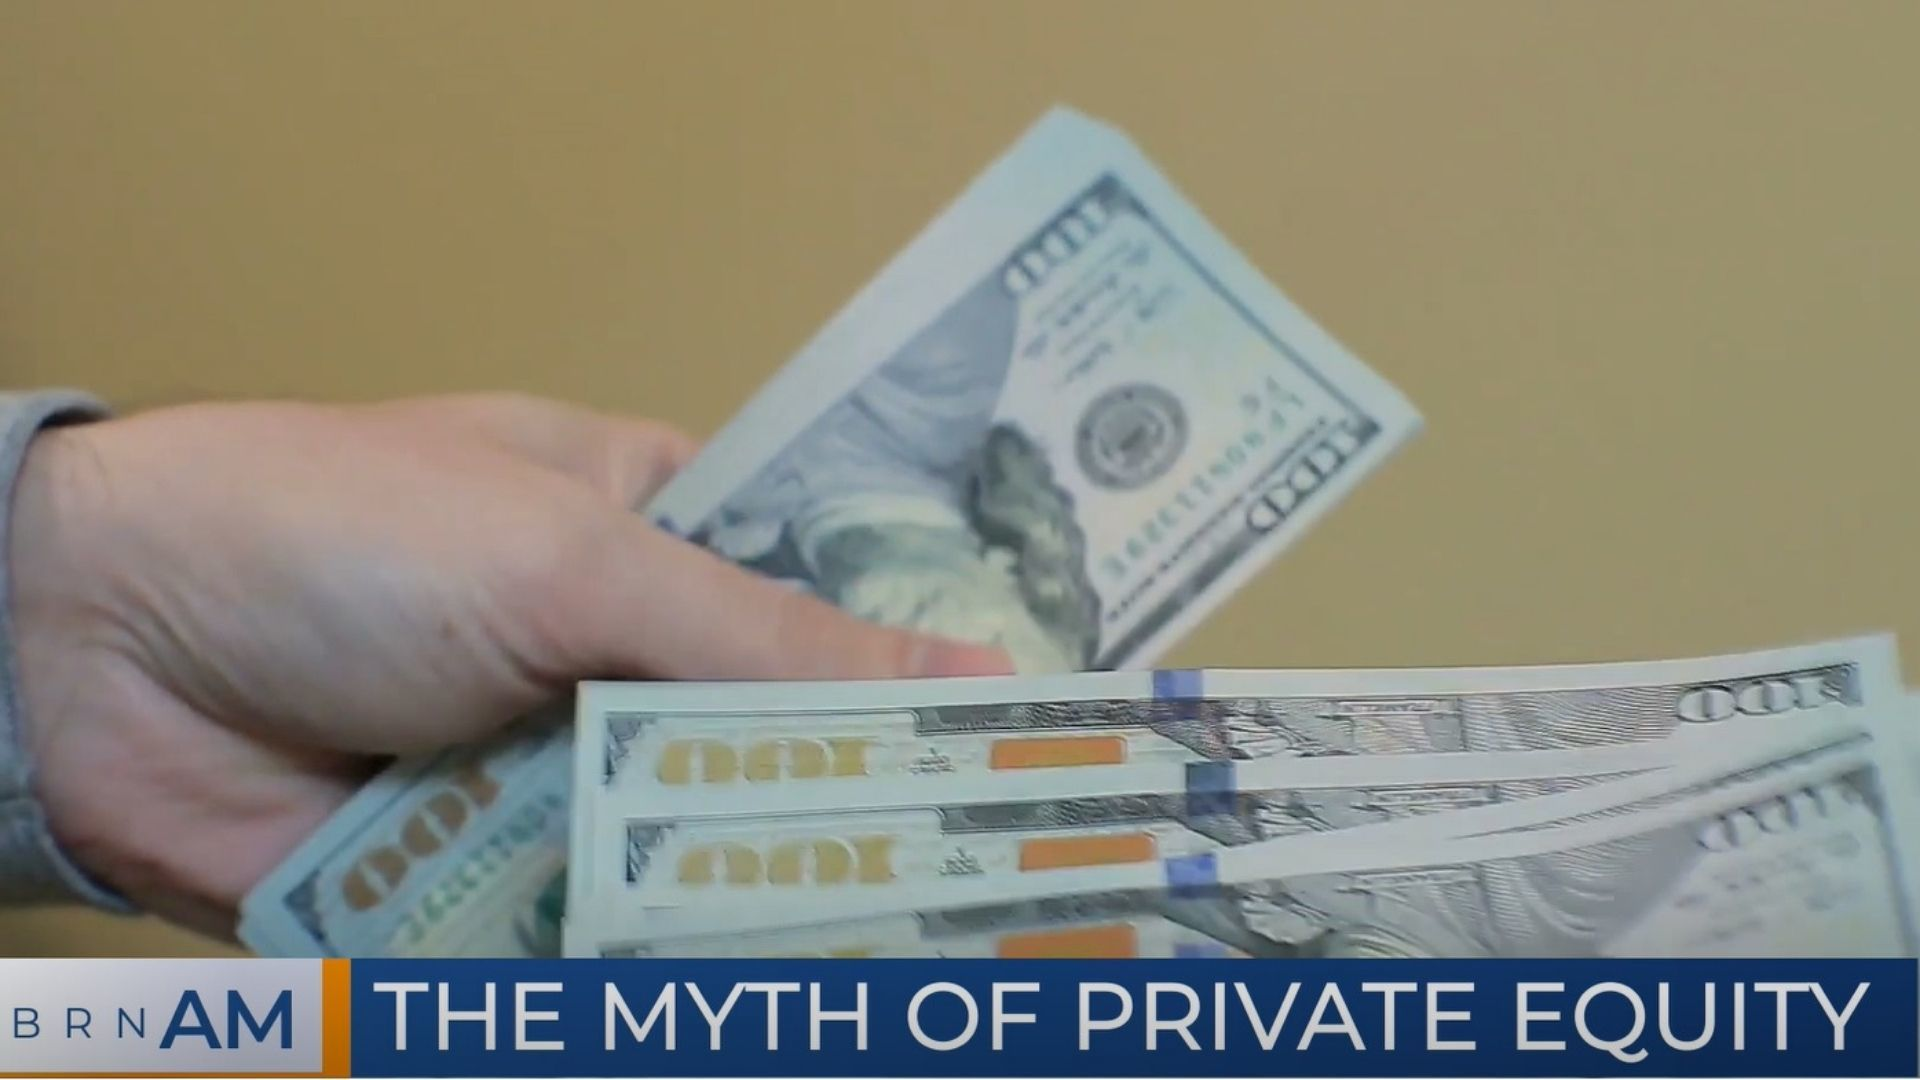 BRN AM | The Myth of Private Equity